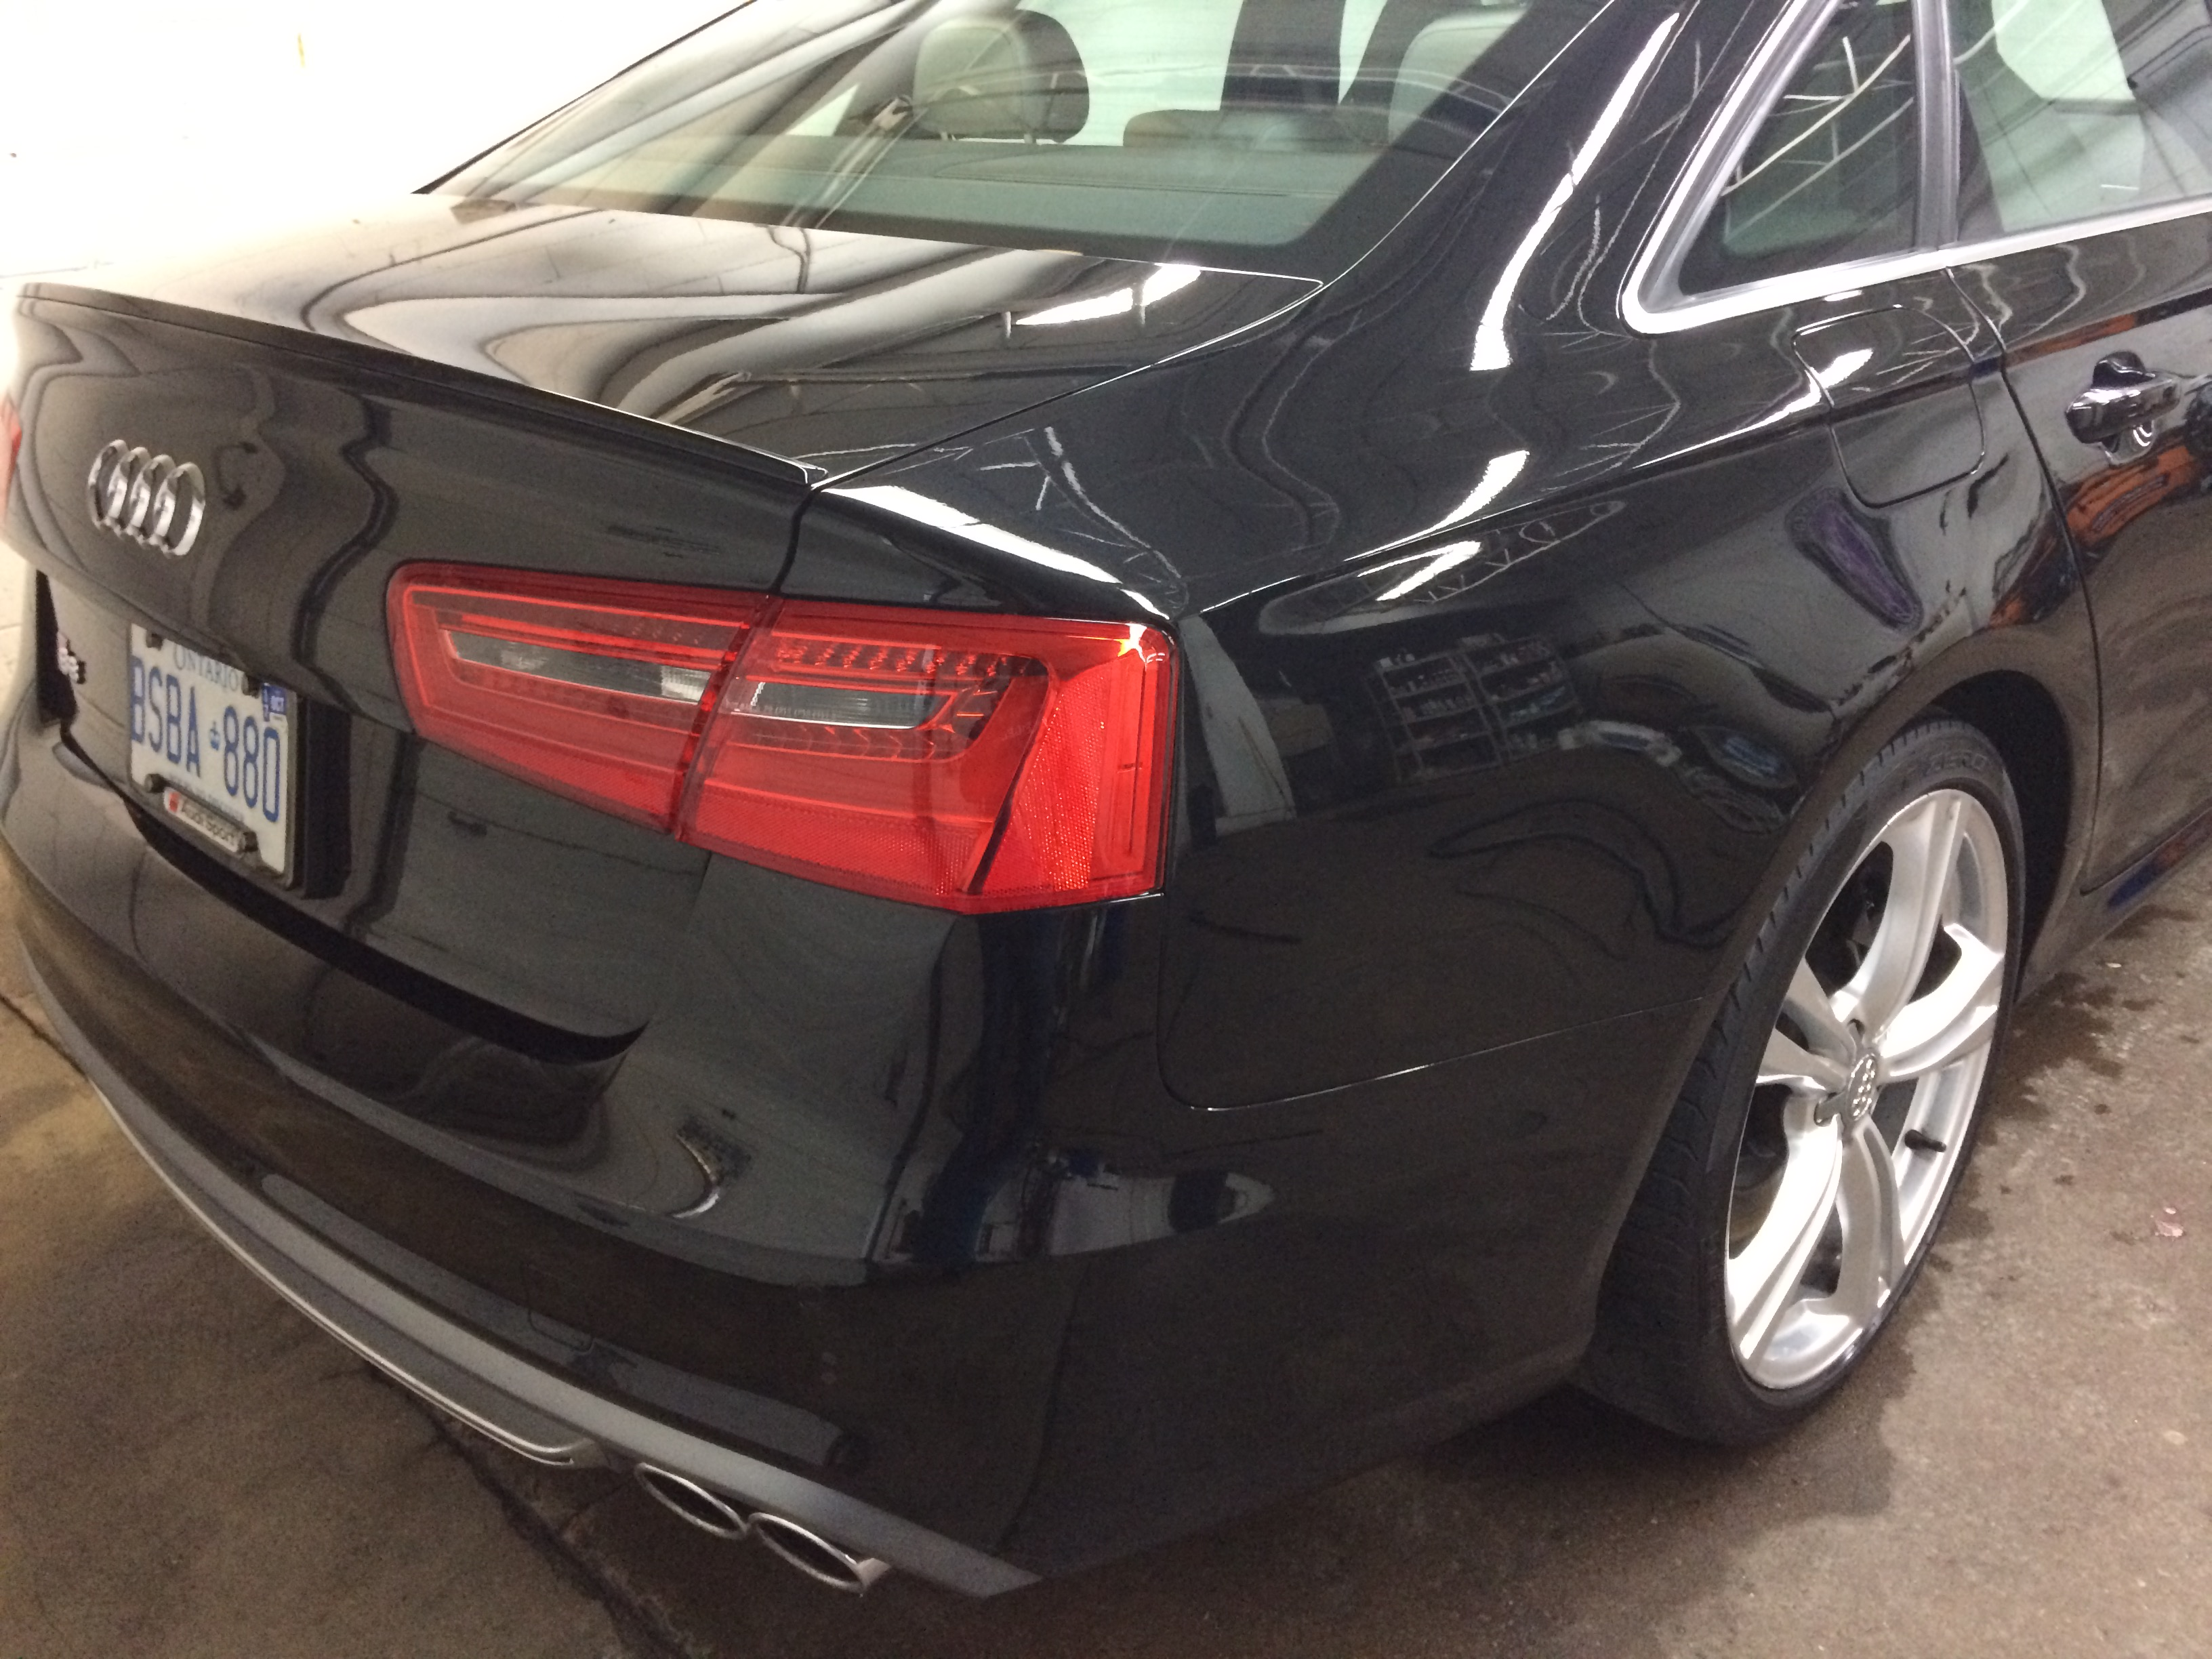 Auto Detailing Toronto >> Audi S6 Paint Correction & Kamikaze Miyabi Coat Ceramic Paint Coating | RS AUTO SPA TORONTO